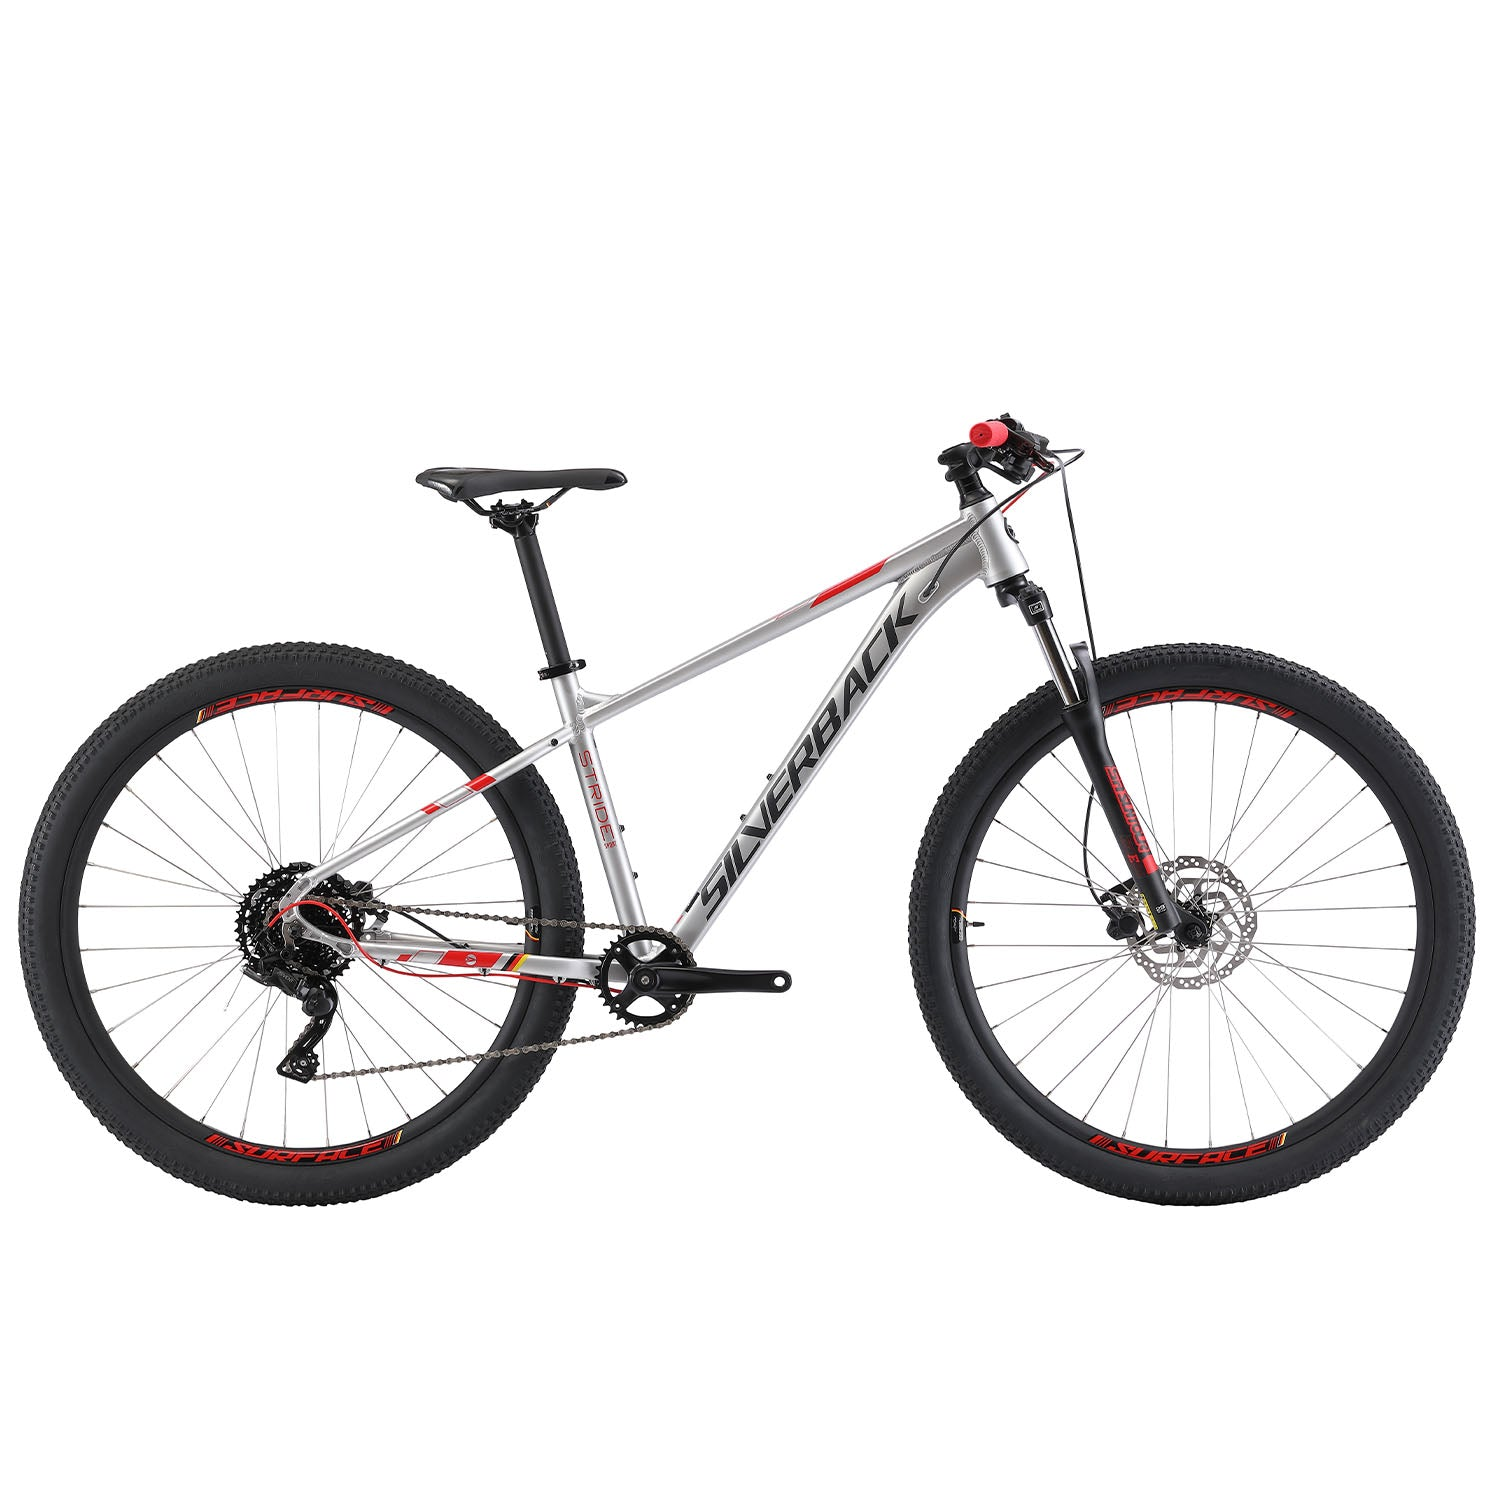 Stride Sport hardtail Mountain bike - Silverback